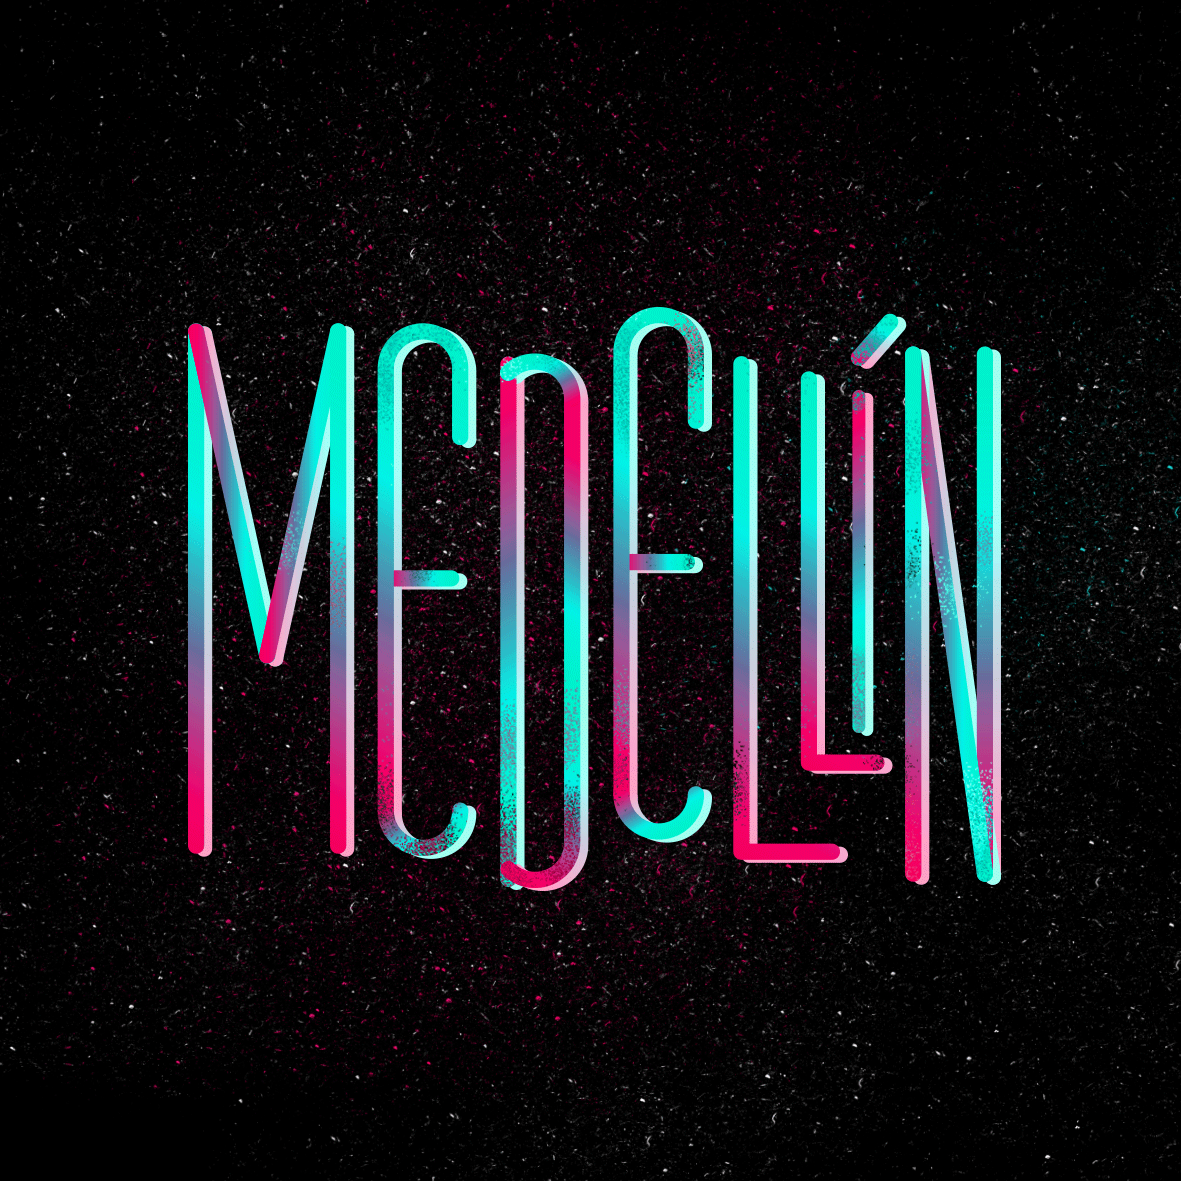 Beautiful Personal Typography by Andrea Núñez